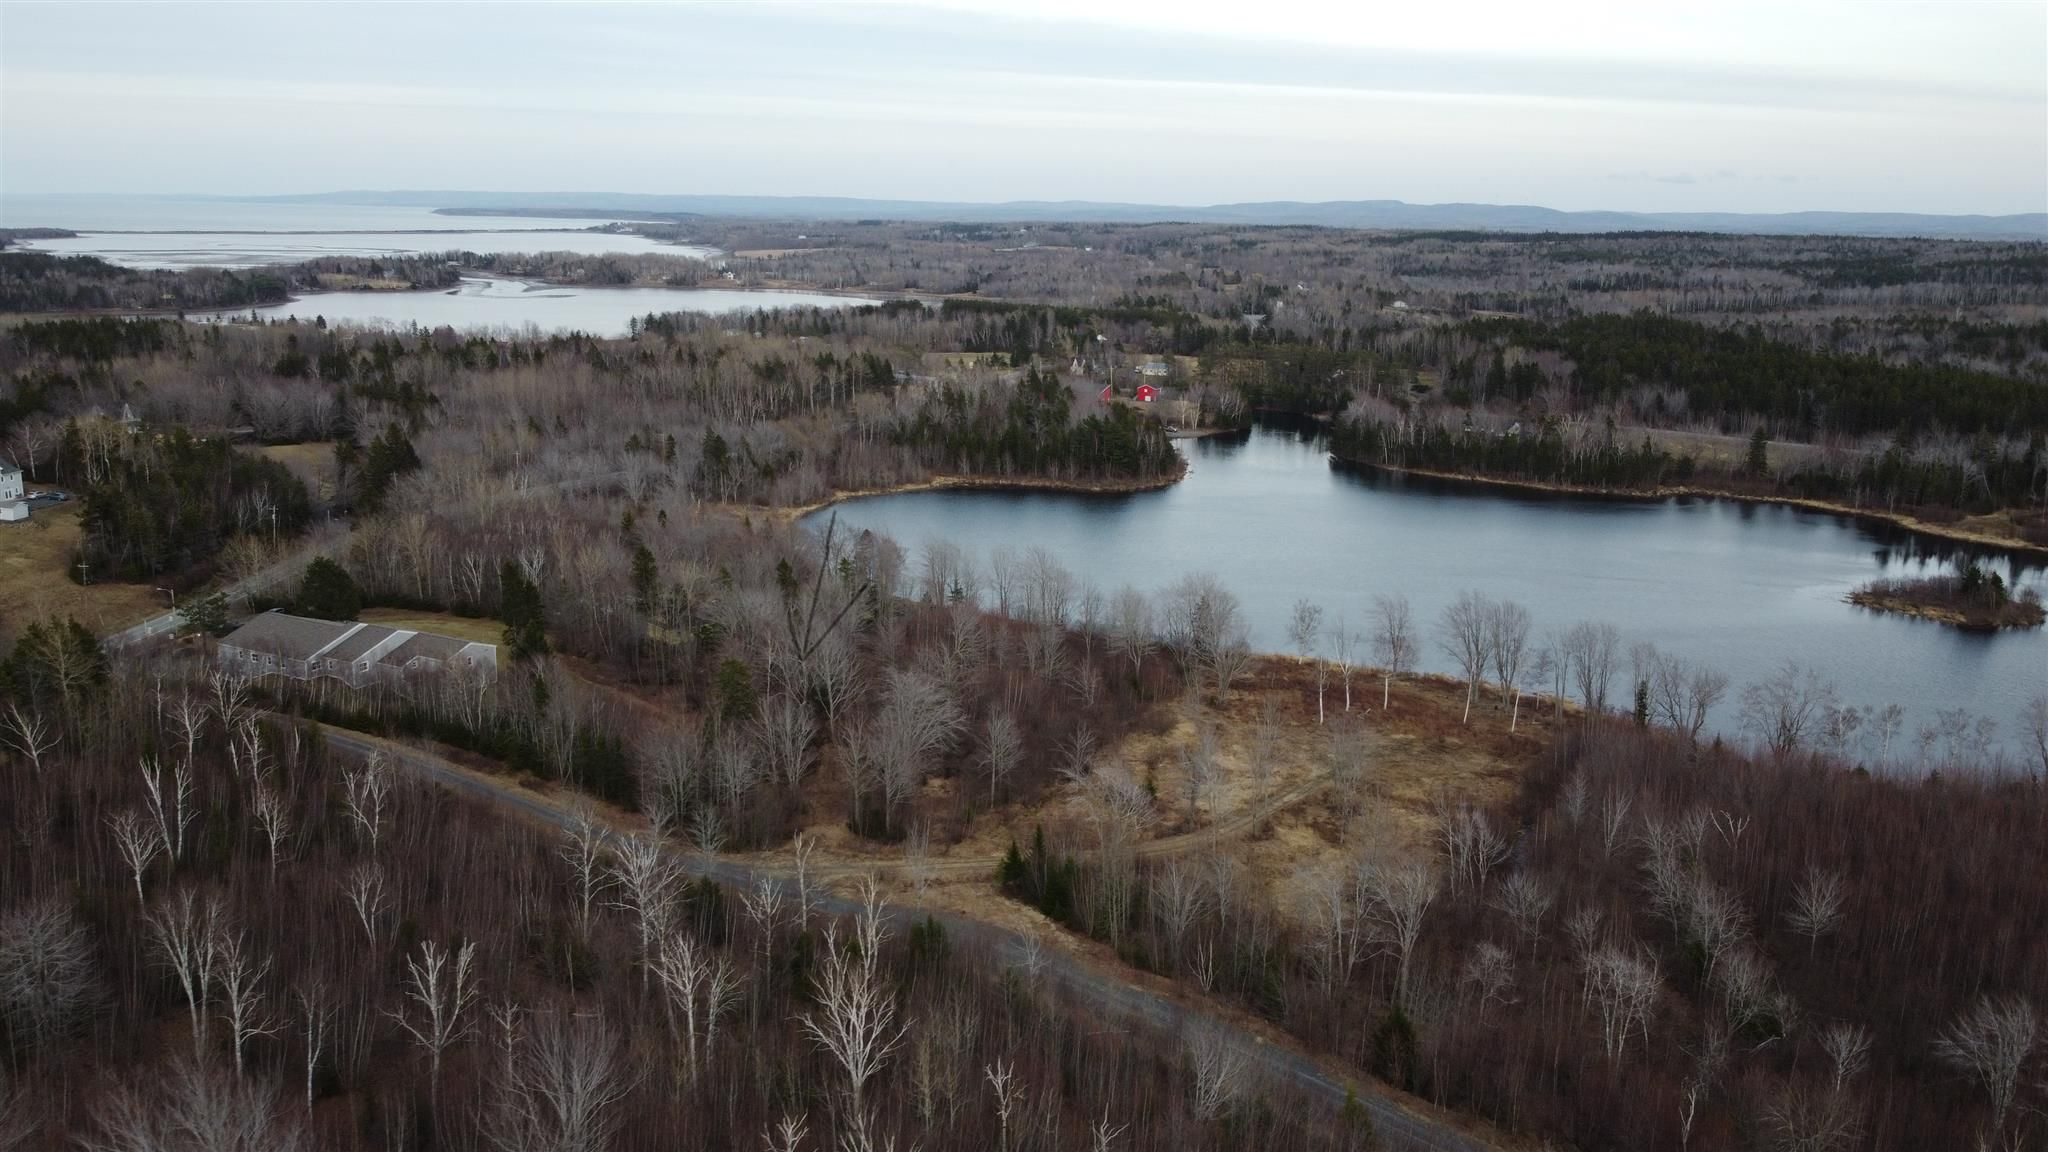 Main Photo: Lot 15 Lakeside Drive in Little Harbour: 108-Rural Pictou County Vacant Land for sale (Northern Region)  : MLS®# 202106889